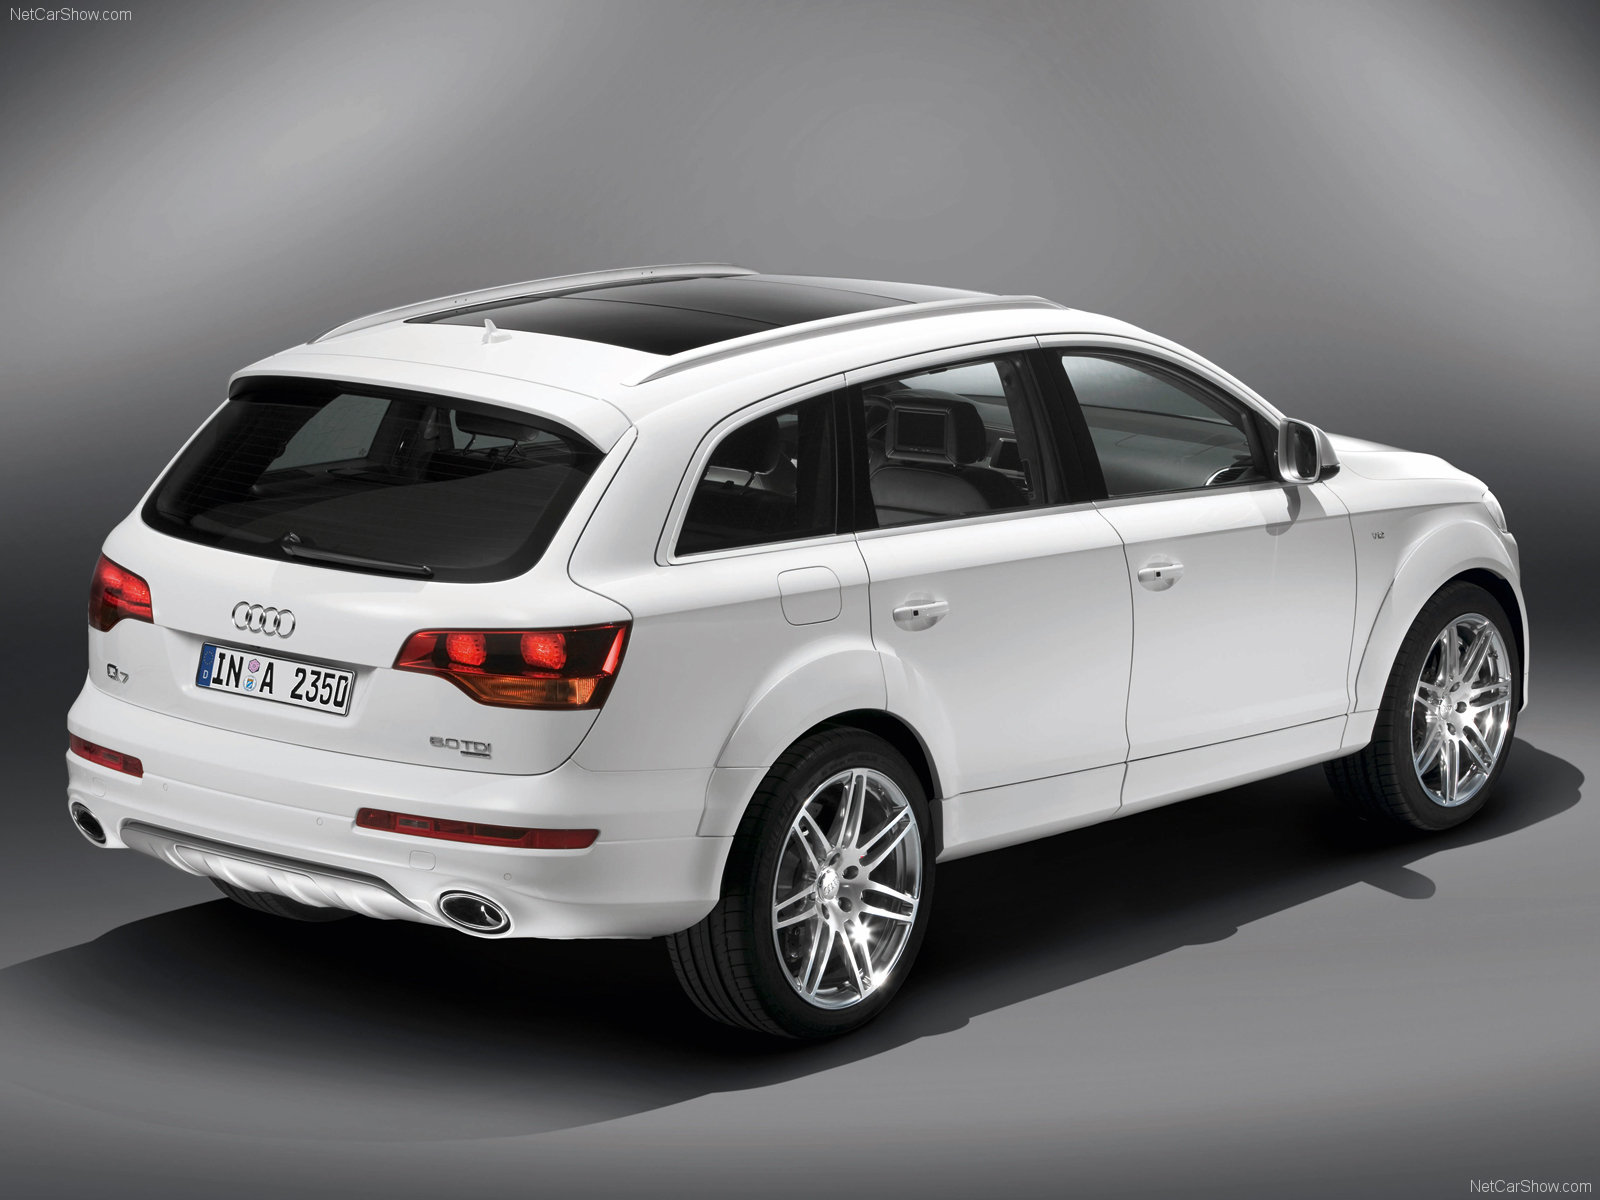 Audi Q7 V12 Tdi Picture 52934 Audi Photo Gallery Carsbase Com